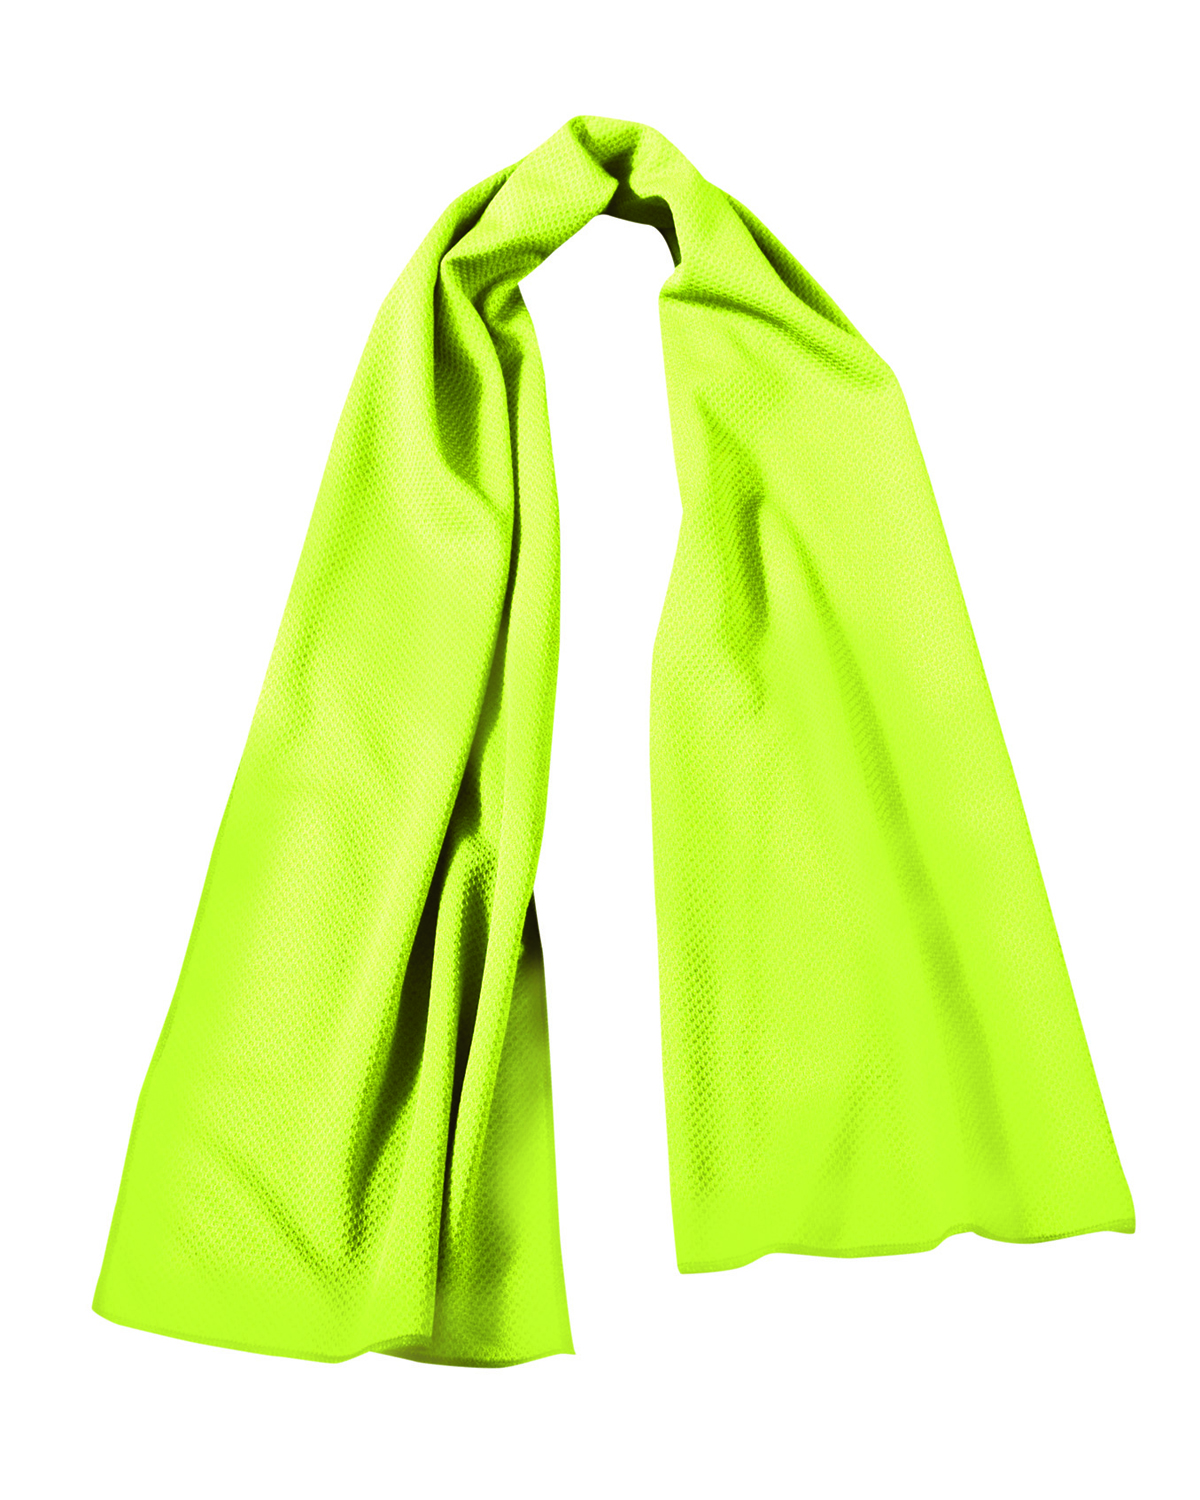 Unisex Wicking & Cooling Towel